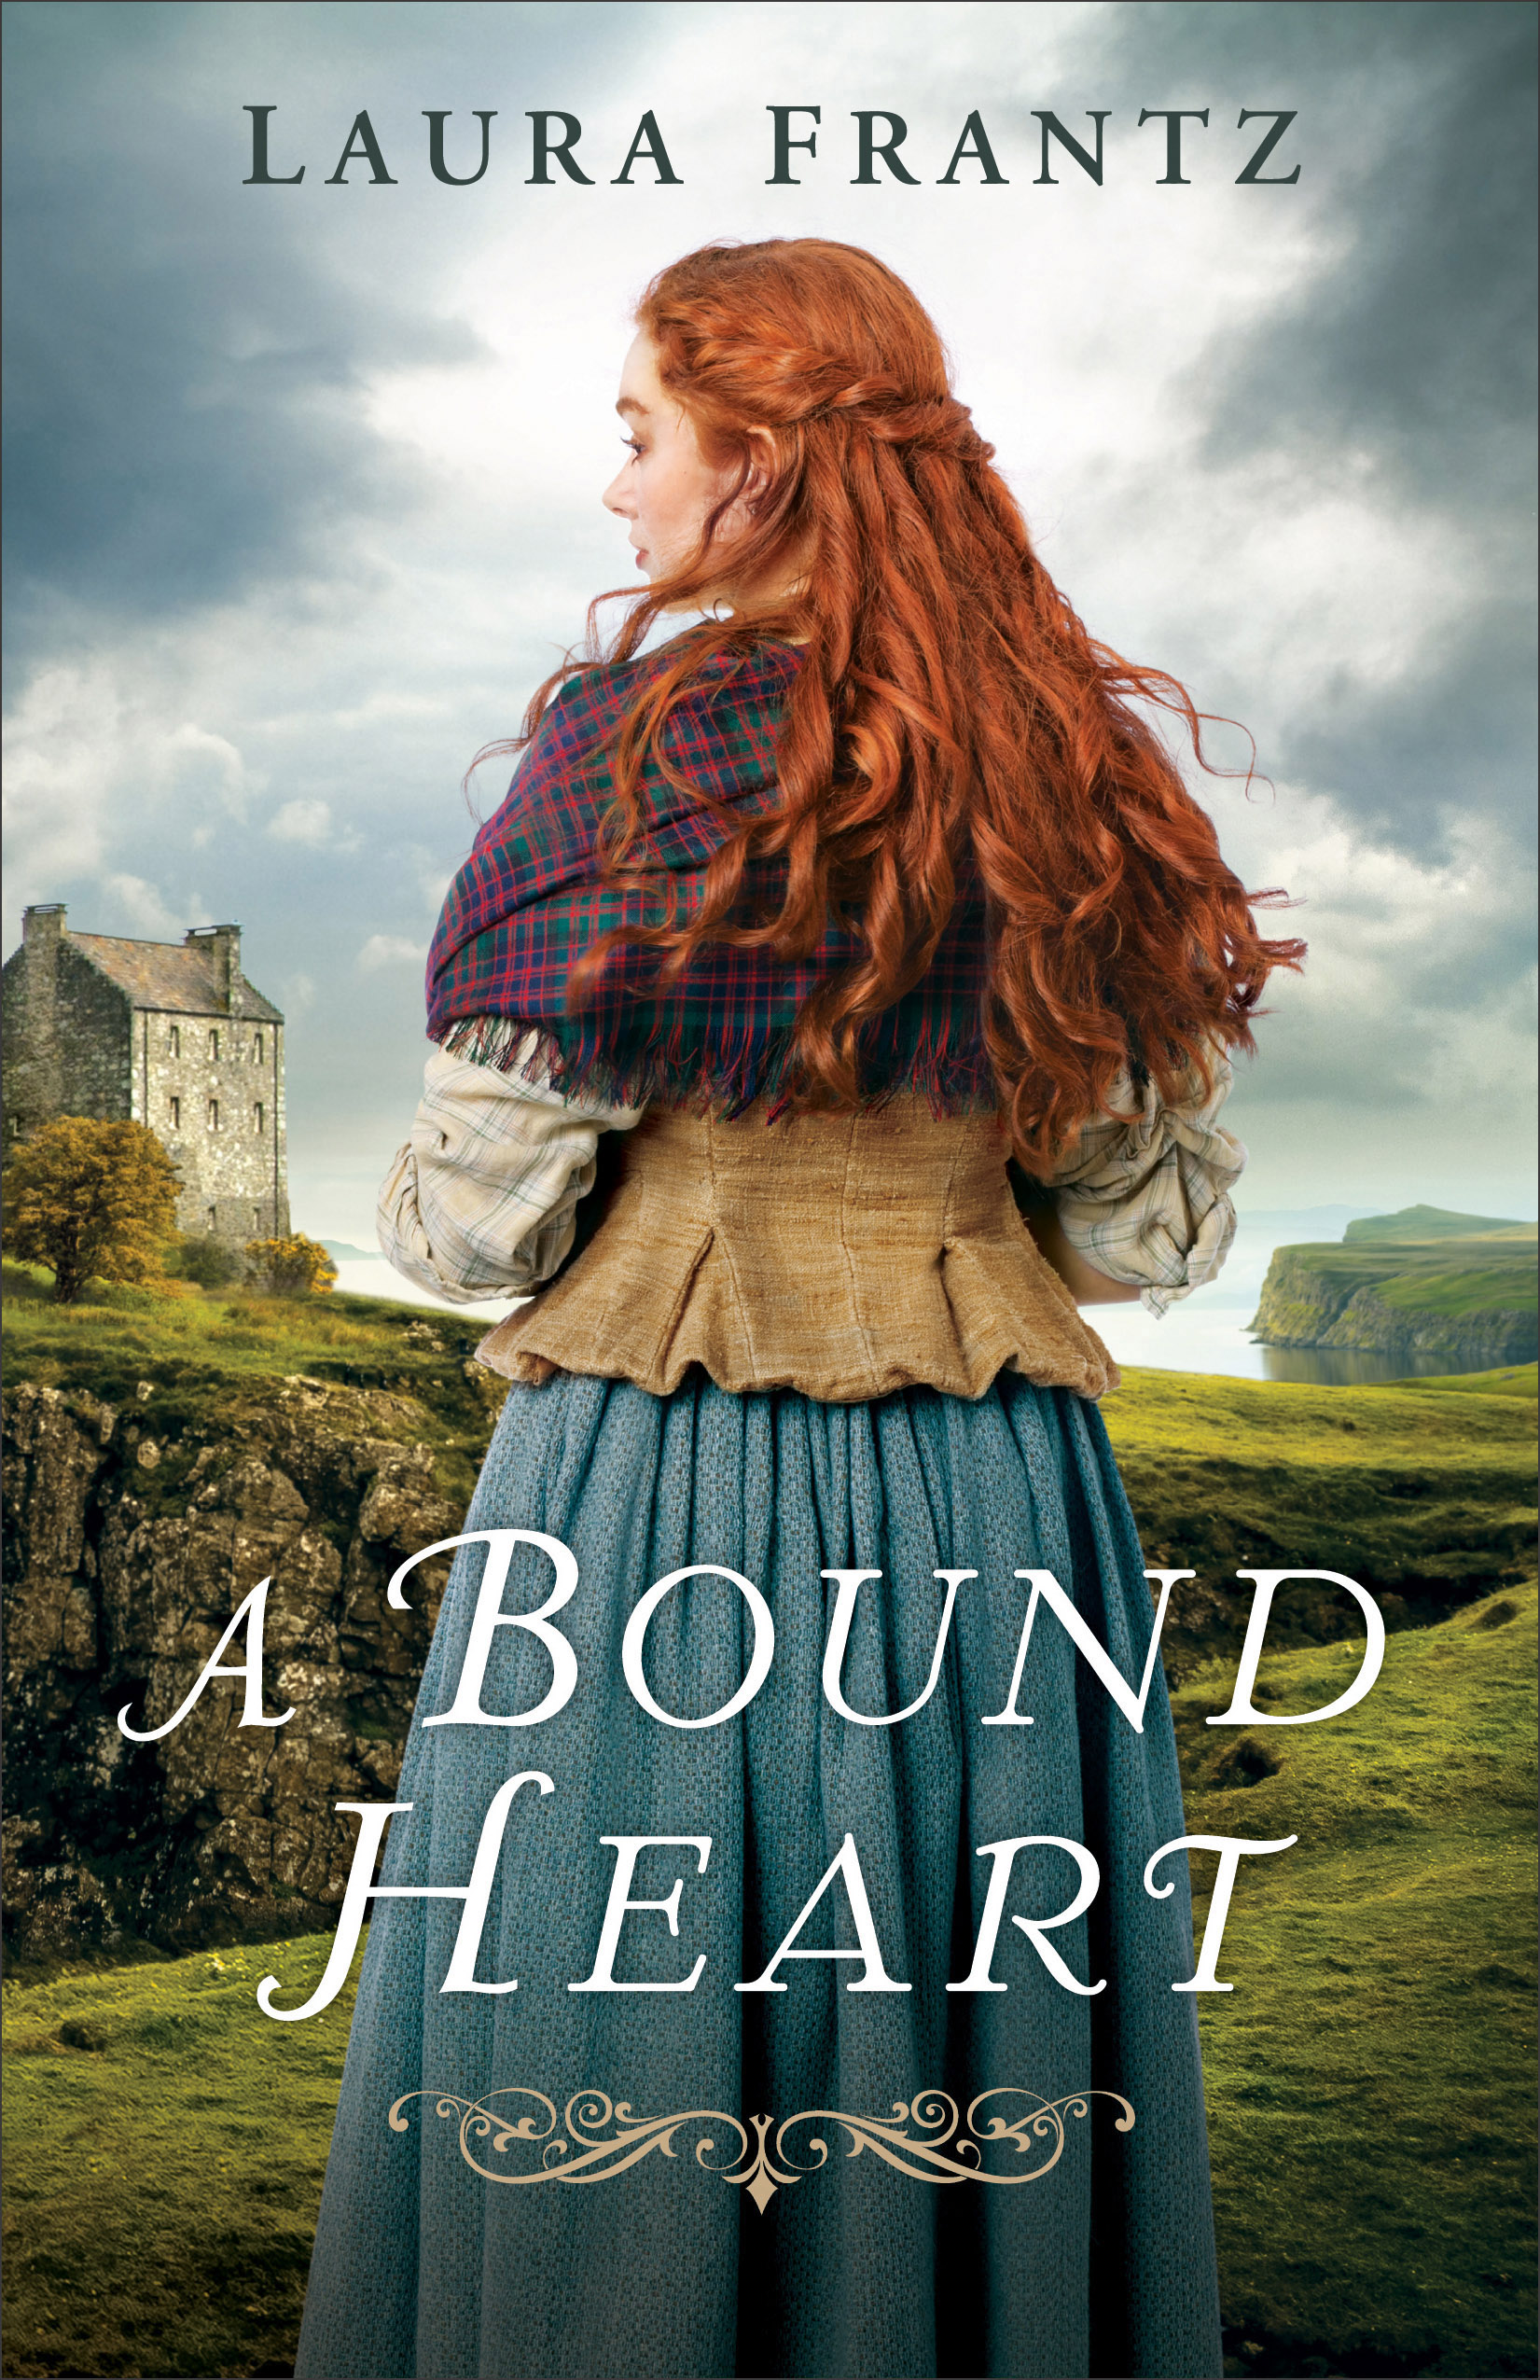 Frant_A Bound Heart_Cover